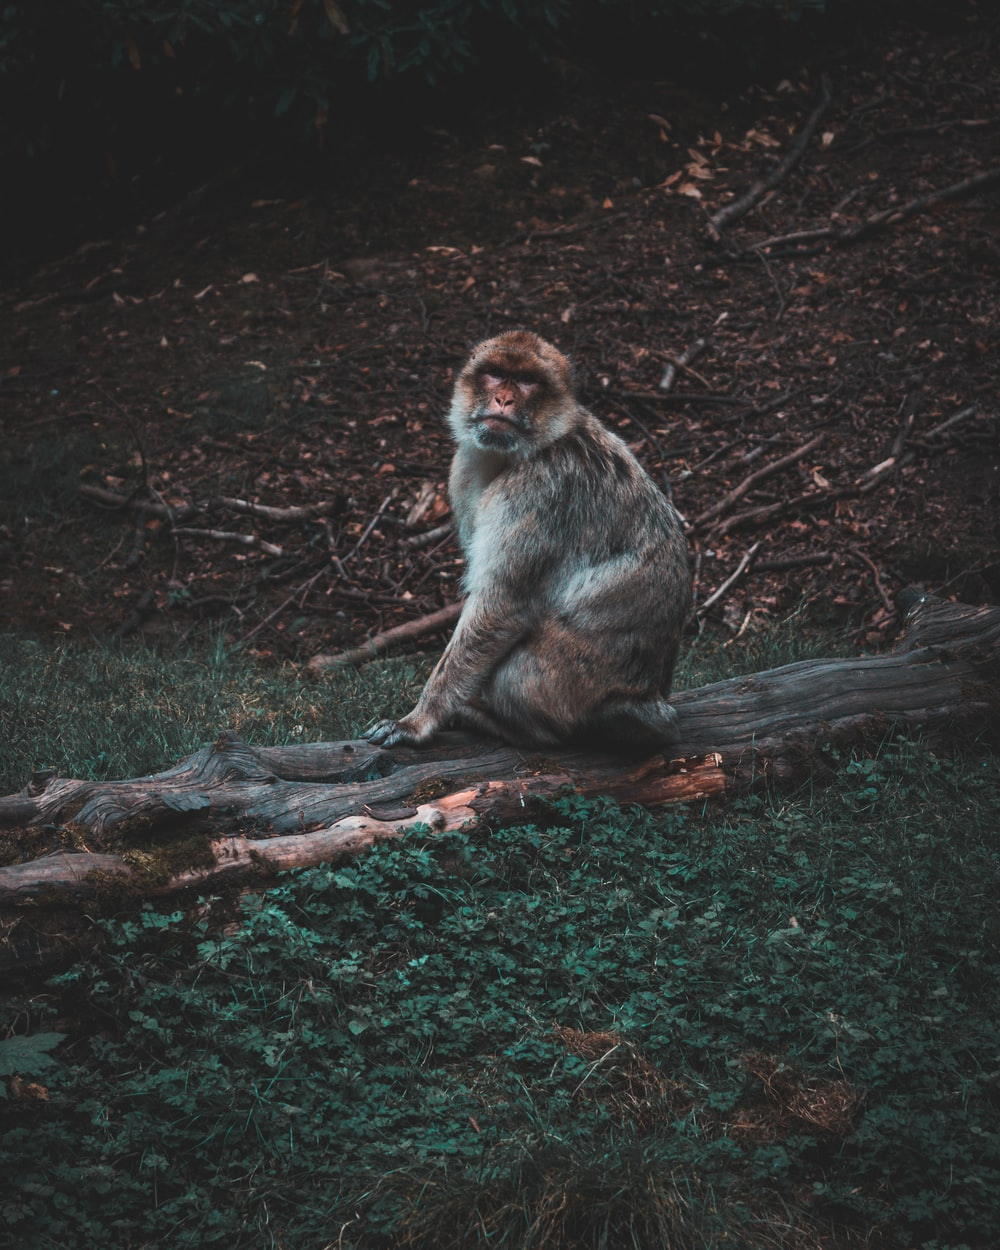 brown and white monkey sitting on brown tree branch during daytime